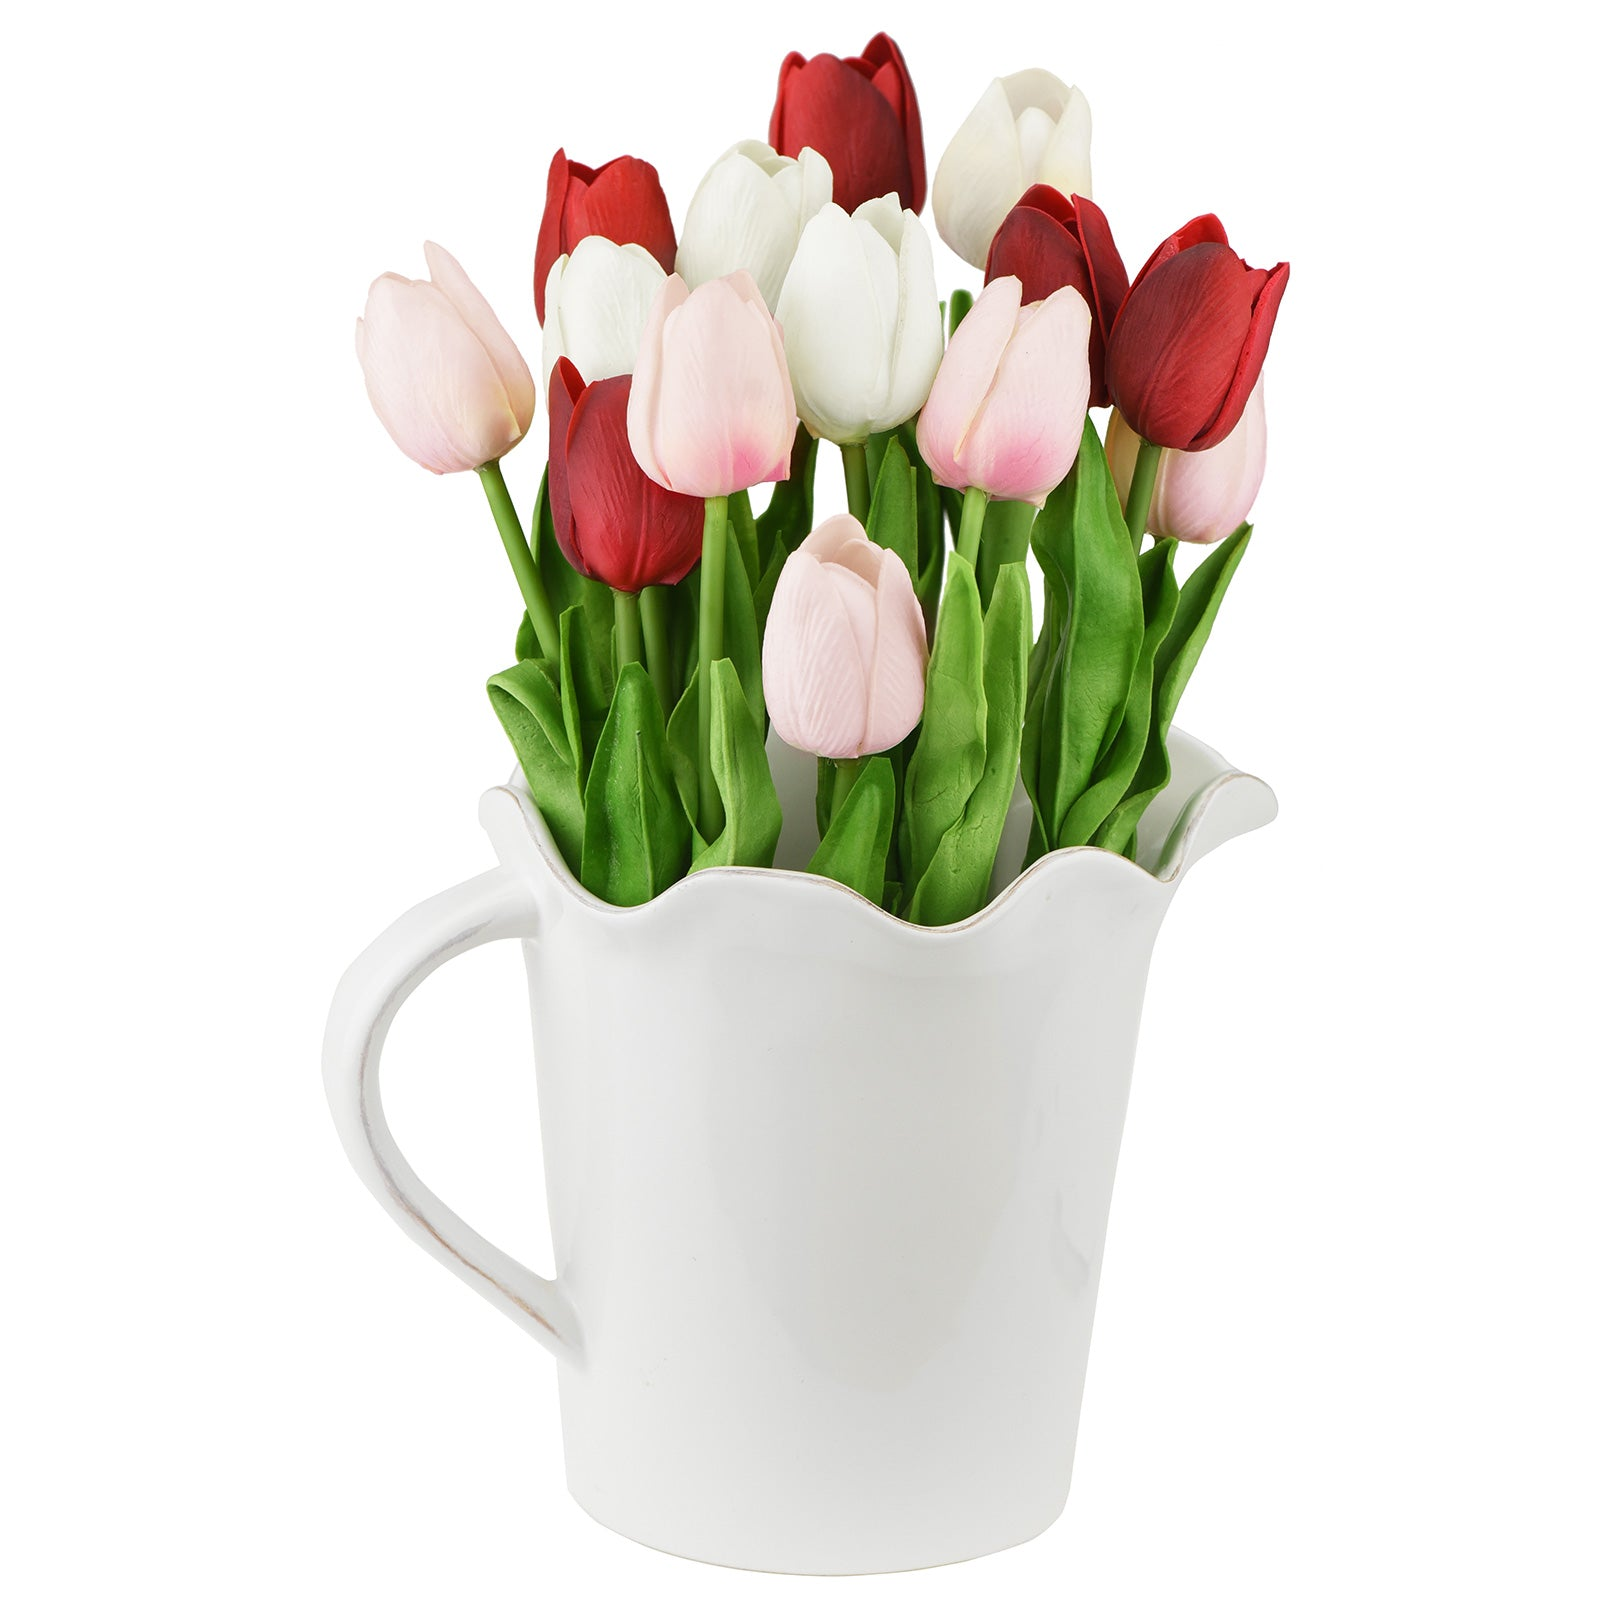 Mix Red and Pink Real Touch Tulips Artificial Flowers Bouquet 15 Stems